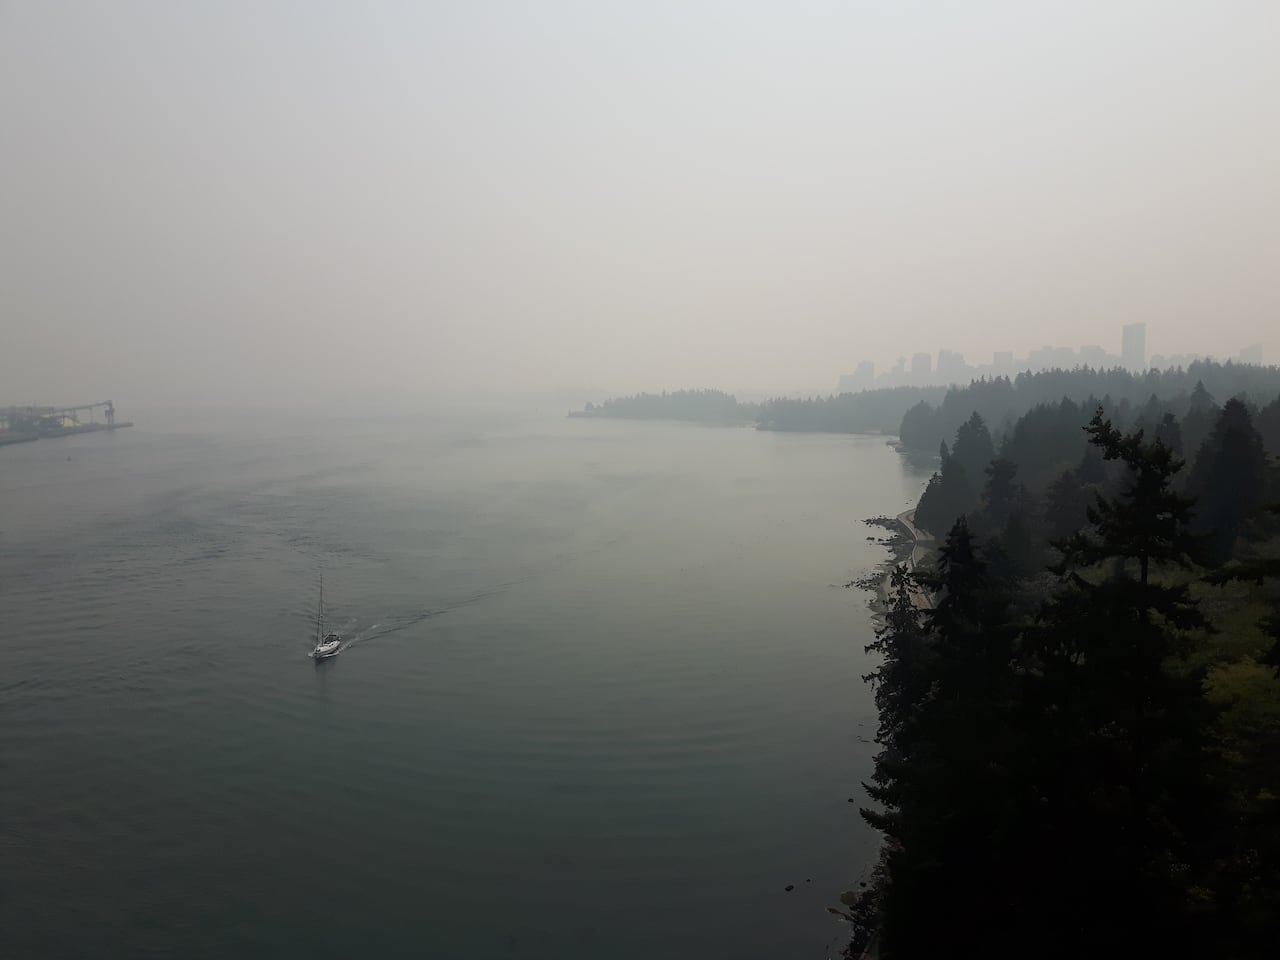 Air quality plummets in Metro Vancouver as wildfire smoke blankets